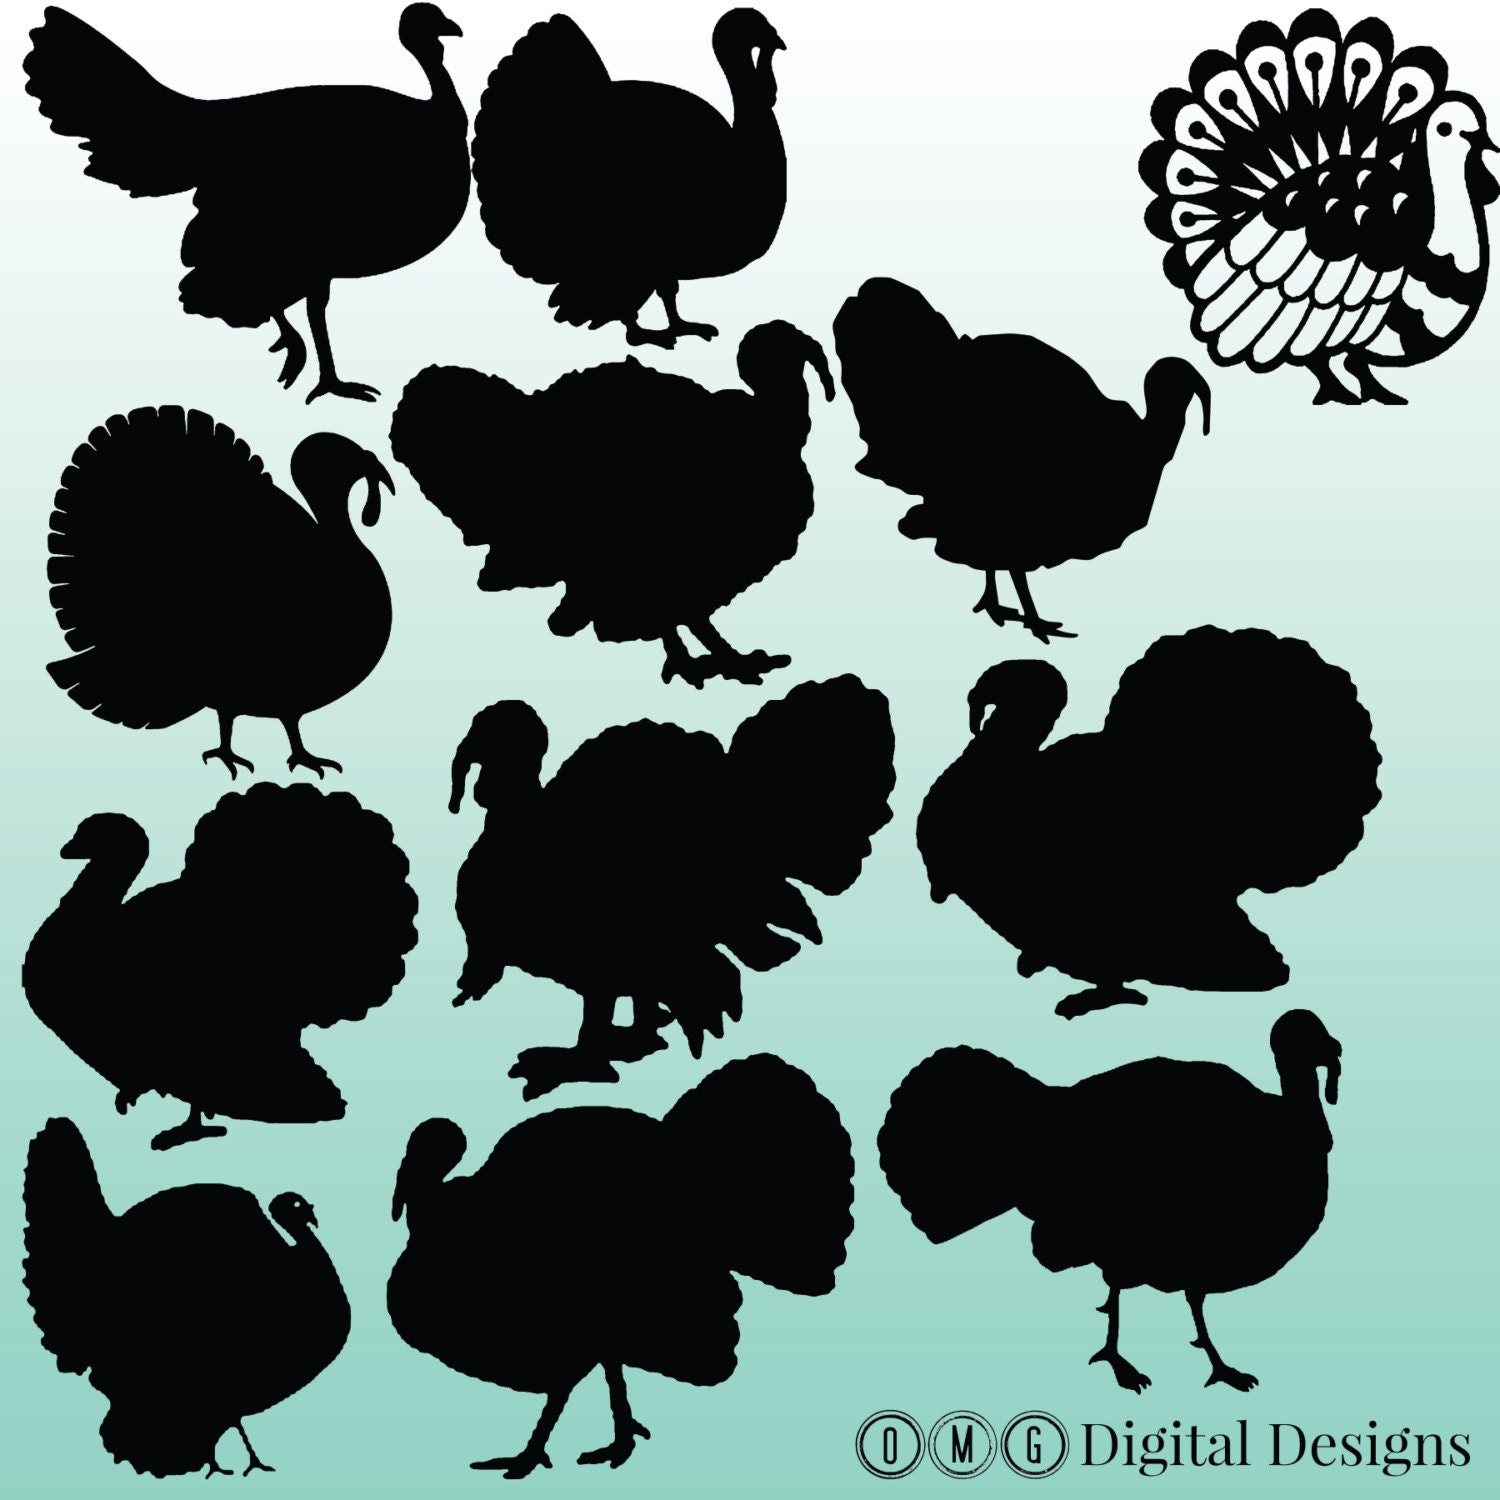 12 turkey silhouette clipart images clipart design elements for Turkey for 12